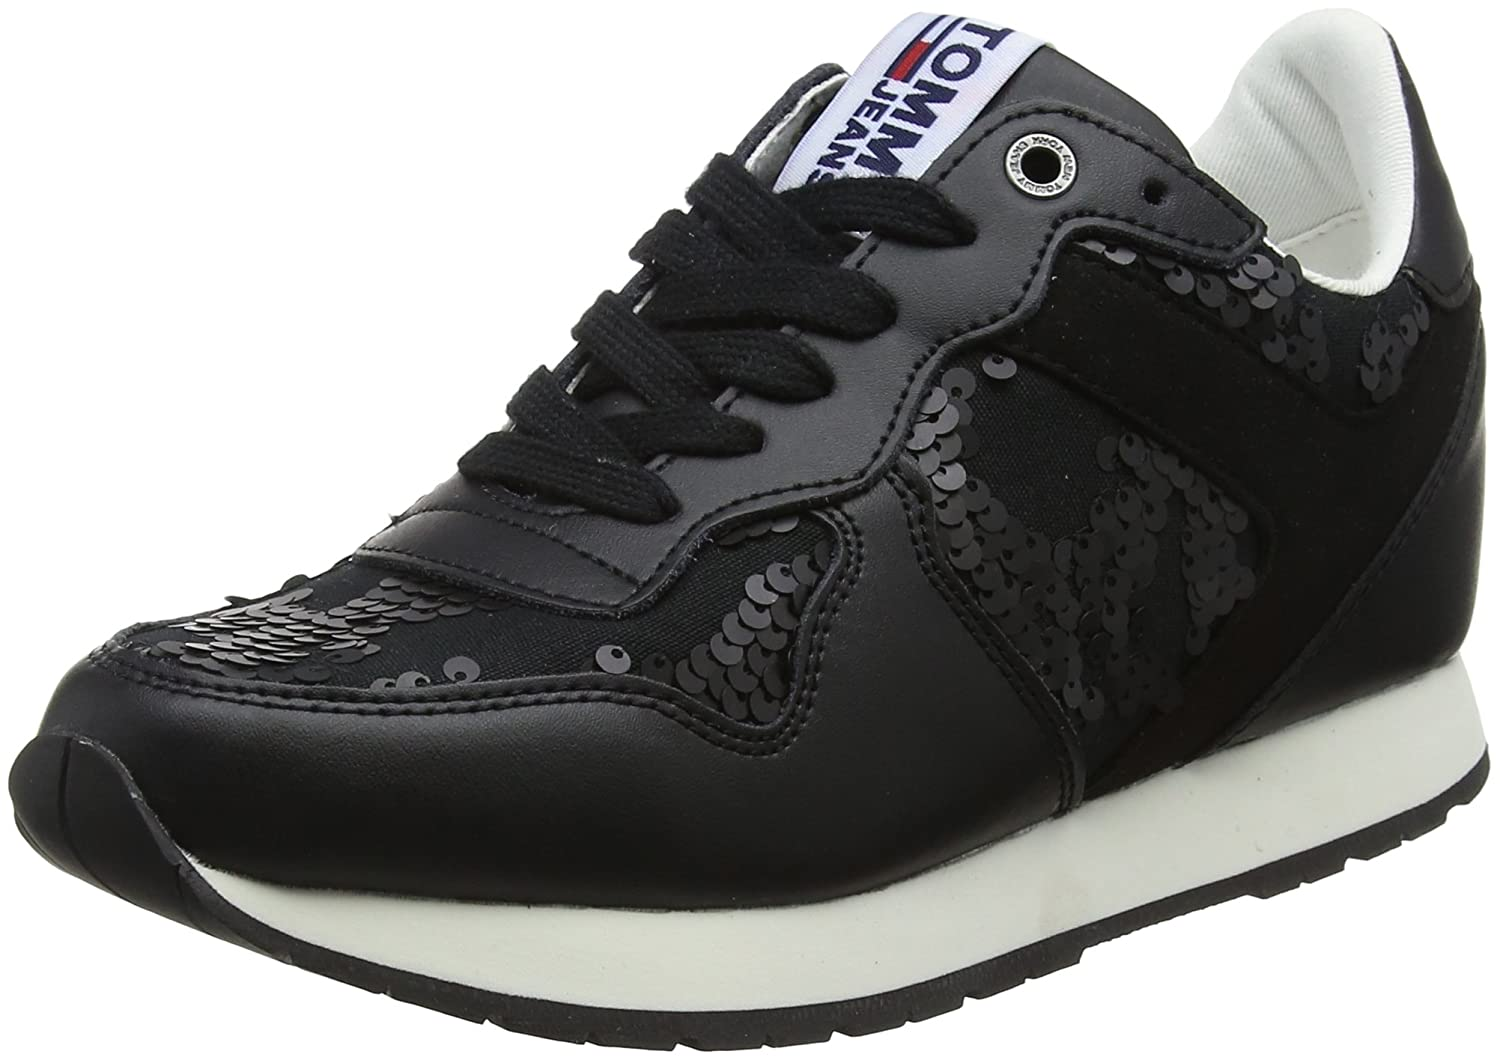 Tommy Hilfiger Tj Wedge Sequin Sequin Sequin scarpe da ginnastica, Scarpe da Ginnastica Basse Donna | Funzione speciale  6b748f